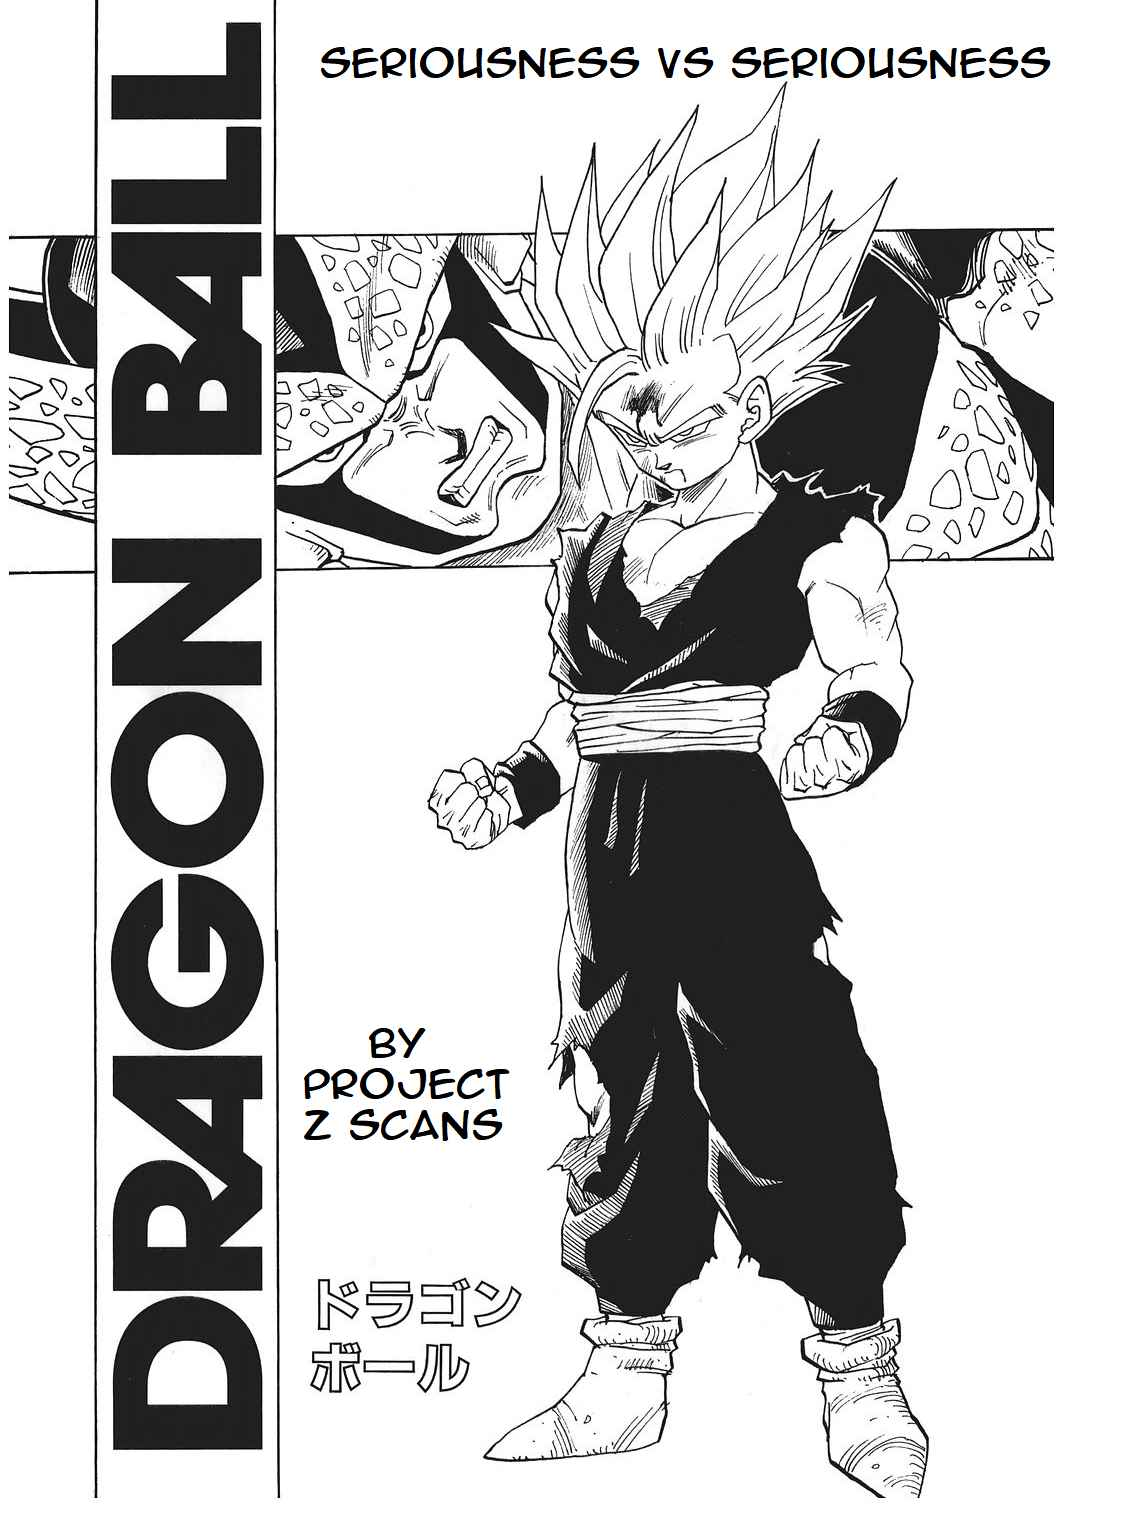 Dragon Ball Vol. 35 Ch. 409 Seriousness vs Seriousness